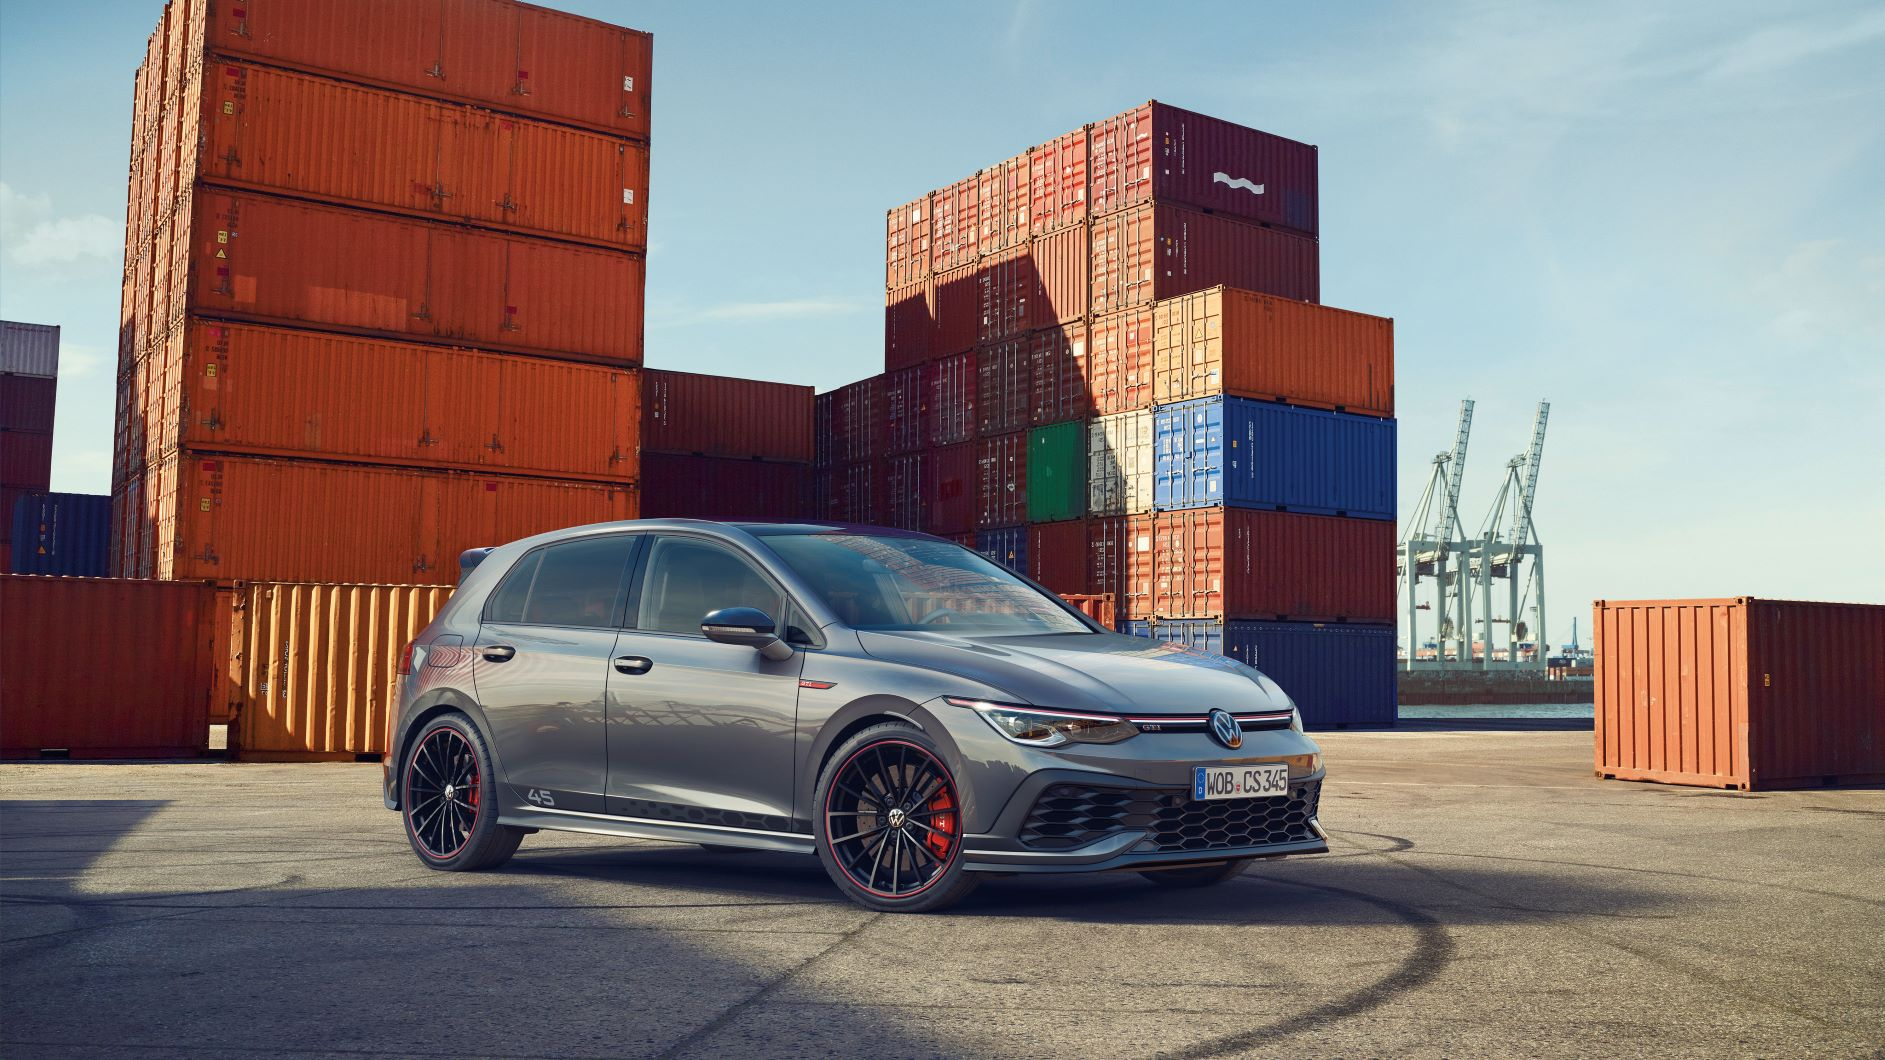 Exterior shot of the edition 45 VW Golf GTI